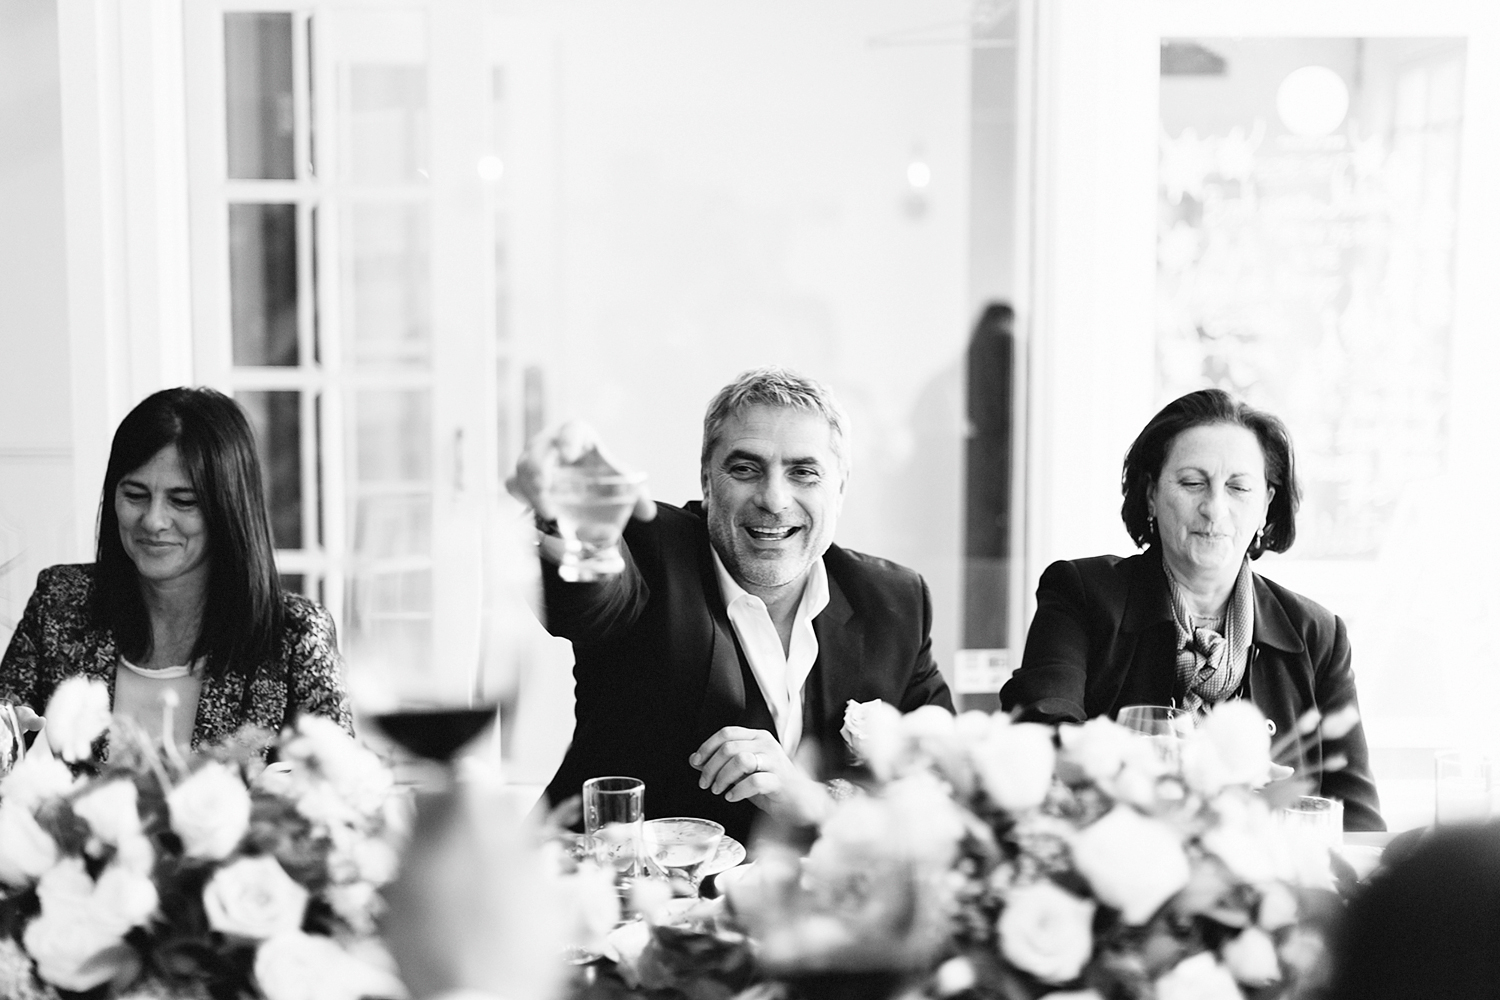 toronto-restaurant-elopement-intimate-wedding-guests-candid-moments-documentary-tablescape-florals-cheers-bw.jpg